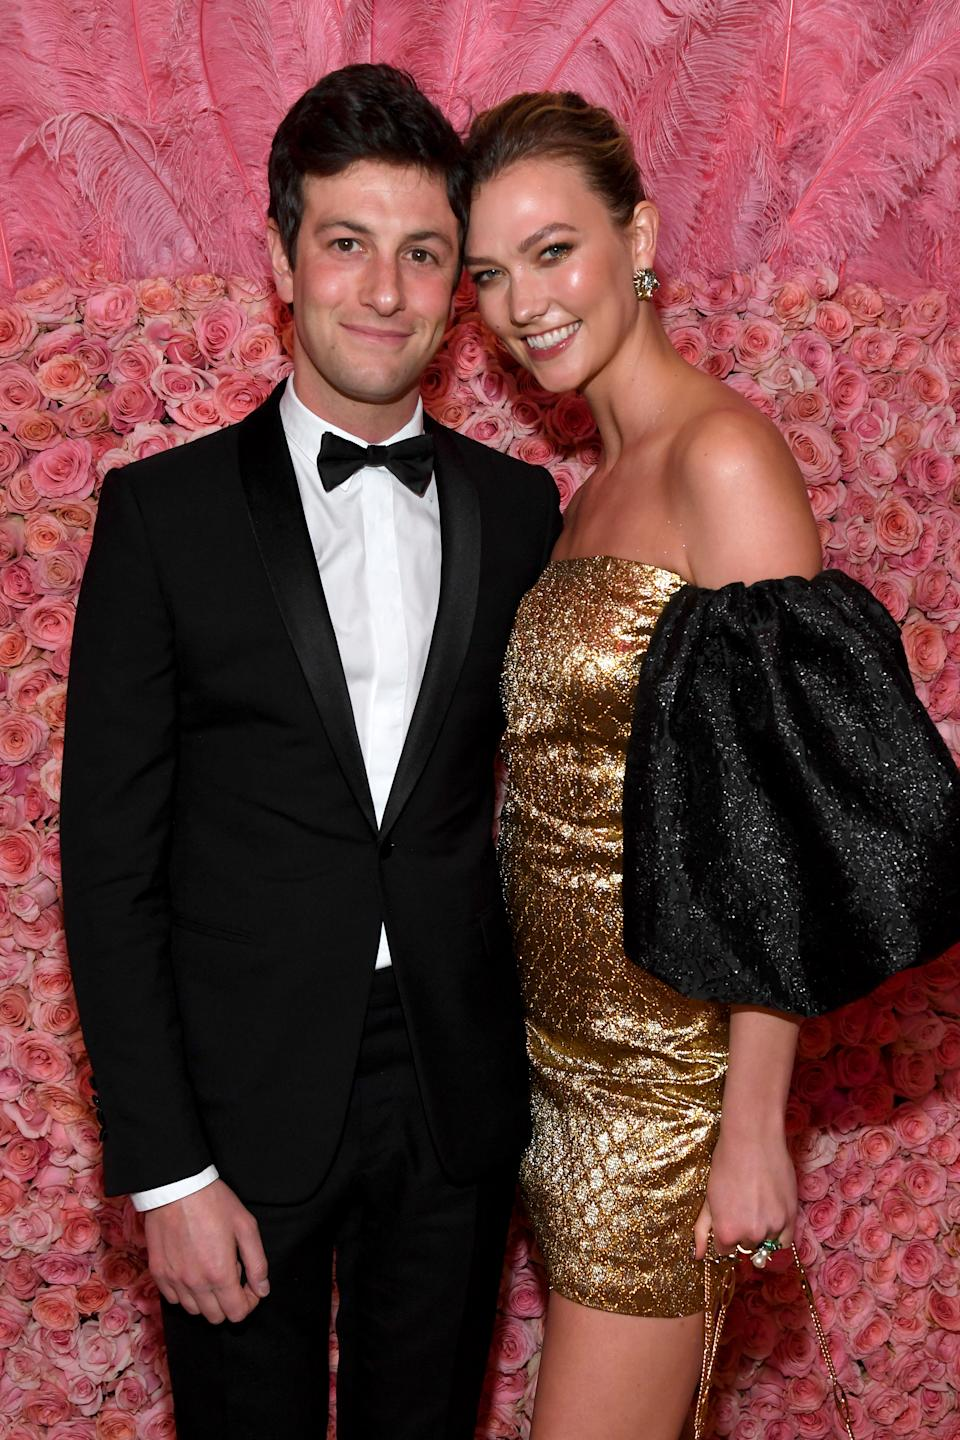 NEW YORK, NEW YORK - MAY 06: Joshua Kushner and Karlie Kloss attend The 2019 Met Gala Celebrating Camp: Notes on Fashion at Metropolitan Museum of Art on May 06, 2019 in New York City. (Photo by Kevin Mazur/MG19/Getty Images for The Met Museum/Vogue)